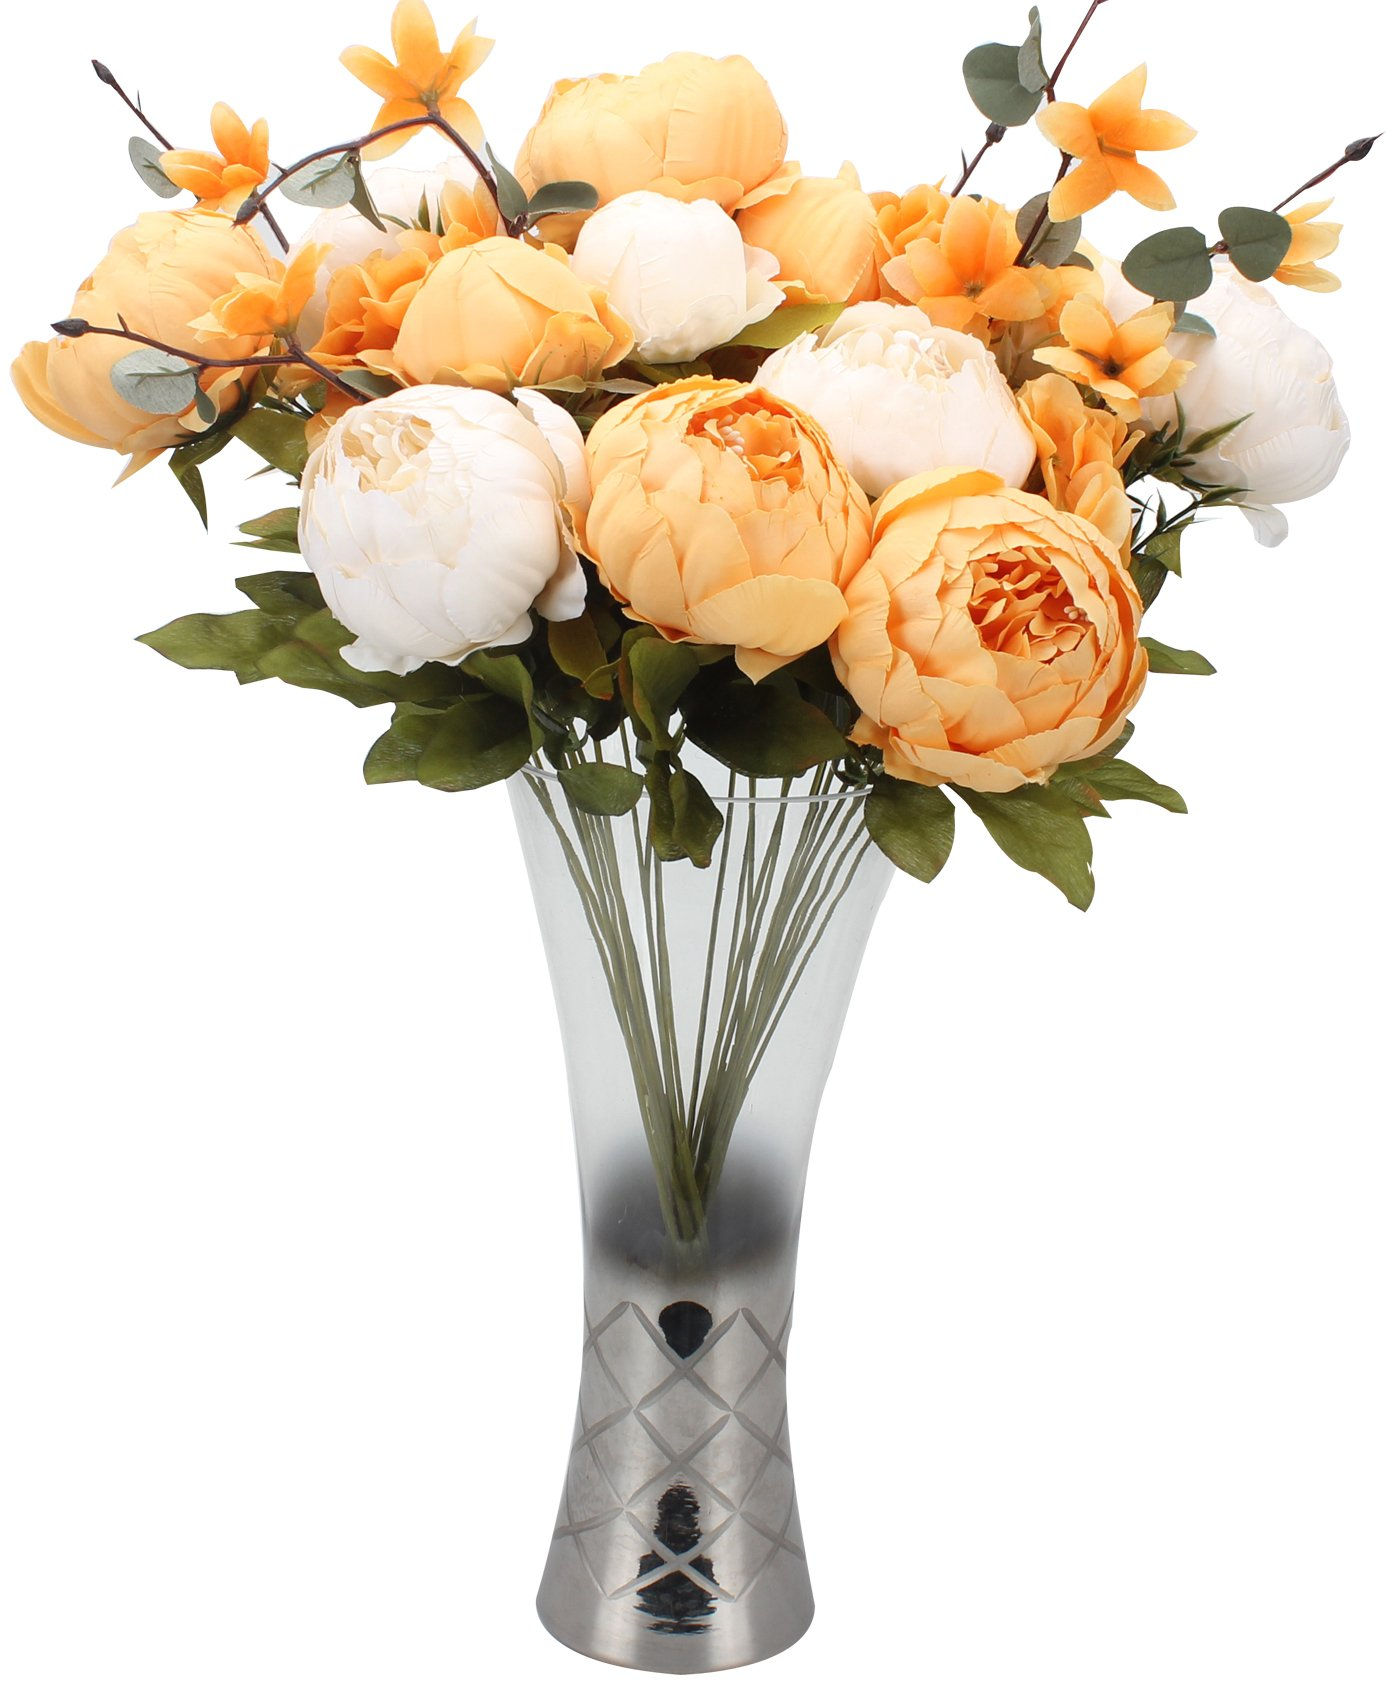 Duovlo-Artificial-Peony-Silk-Flowers-Fake-Flowers-Vintage-Wedding-Home-DecorationPack-of-1-New-Orange